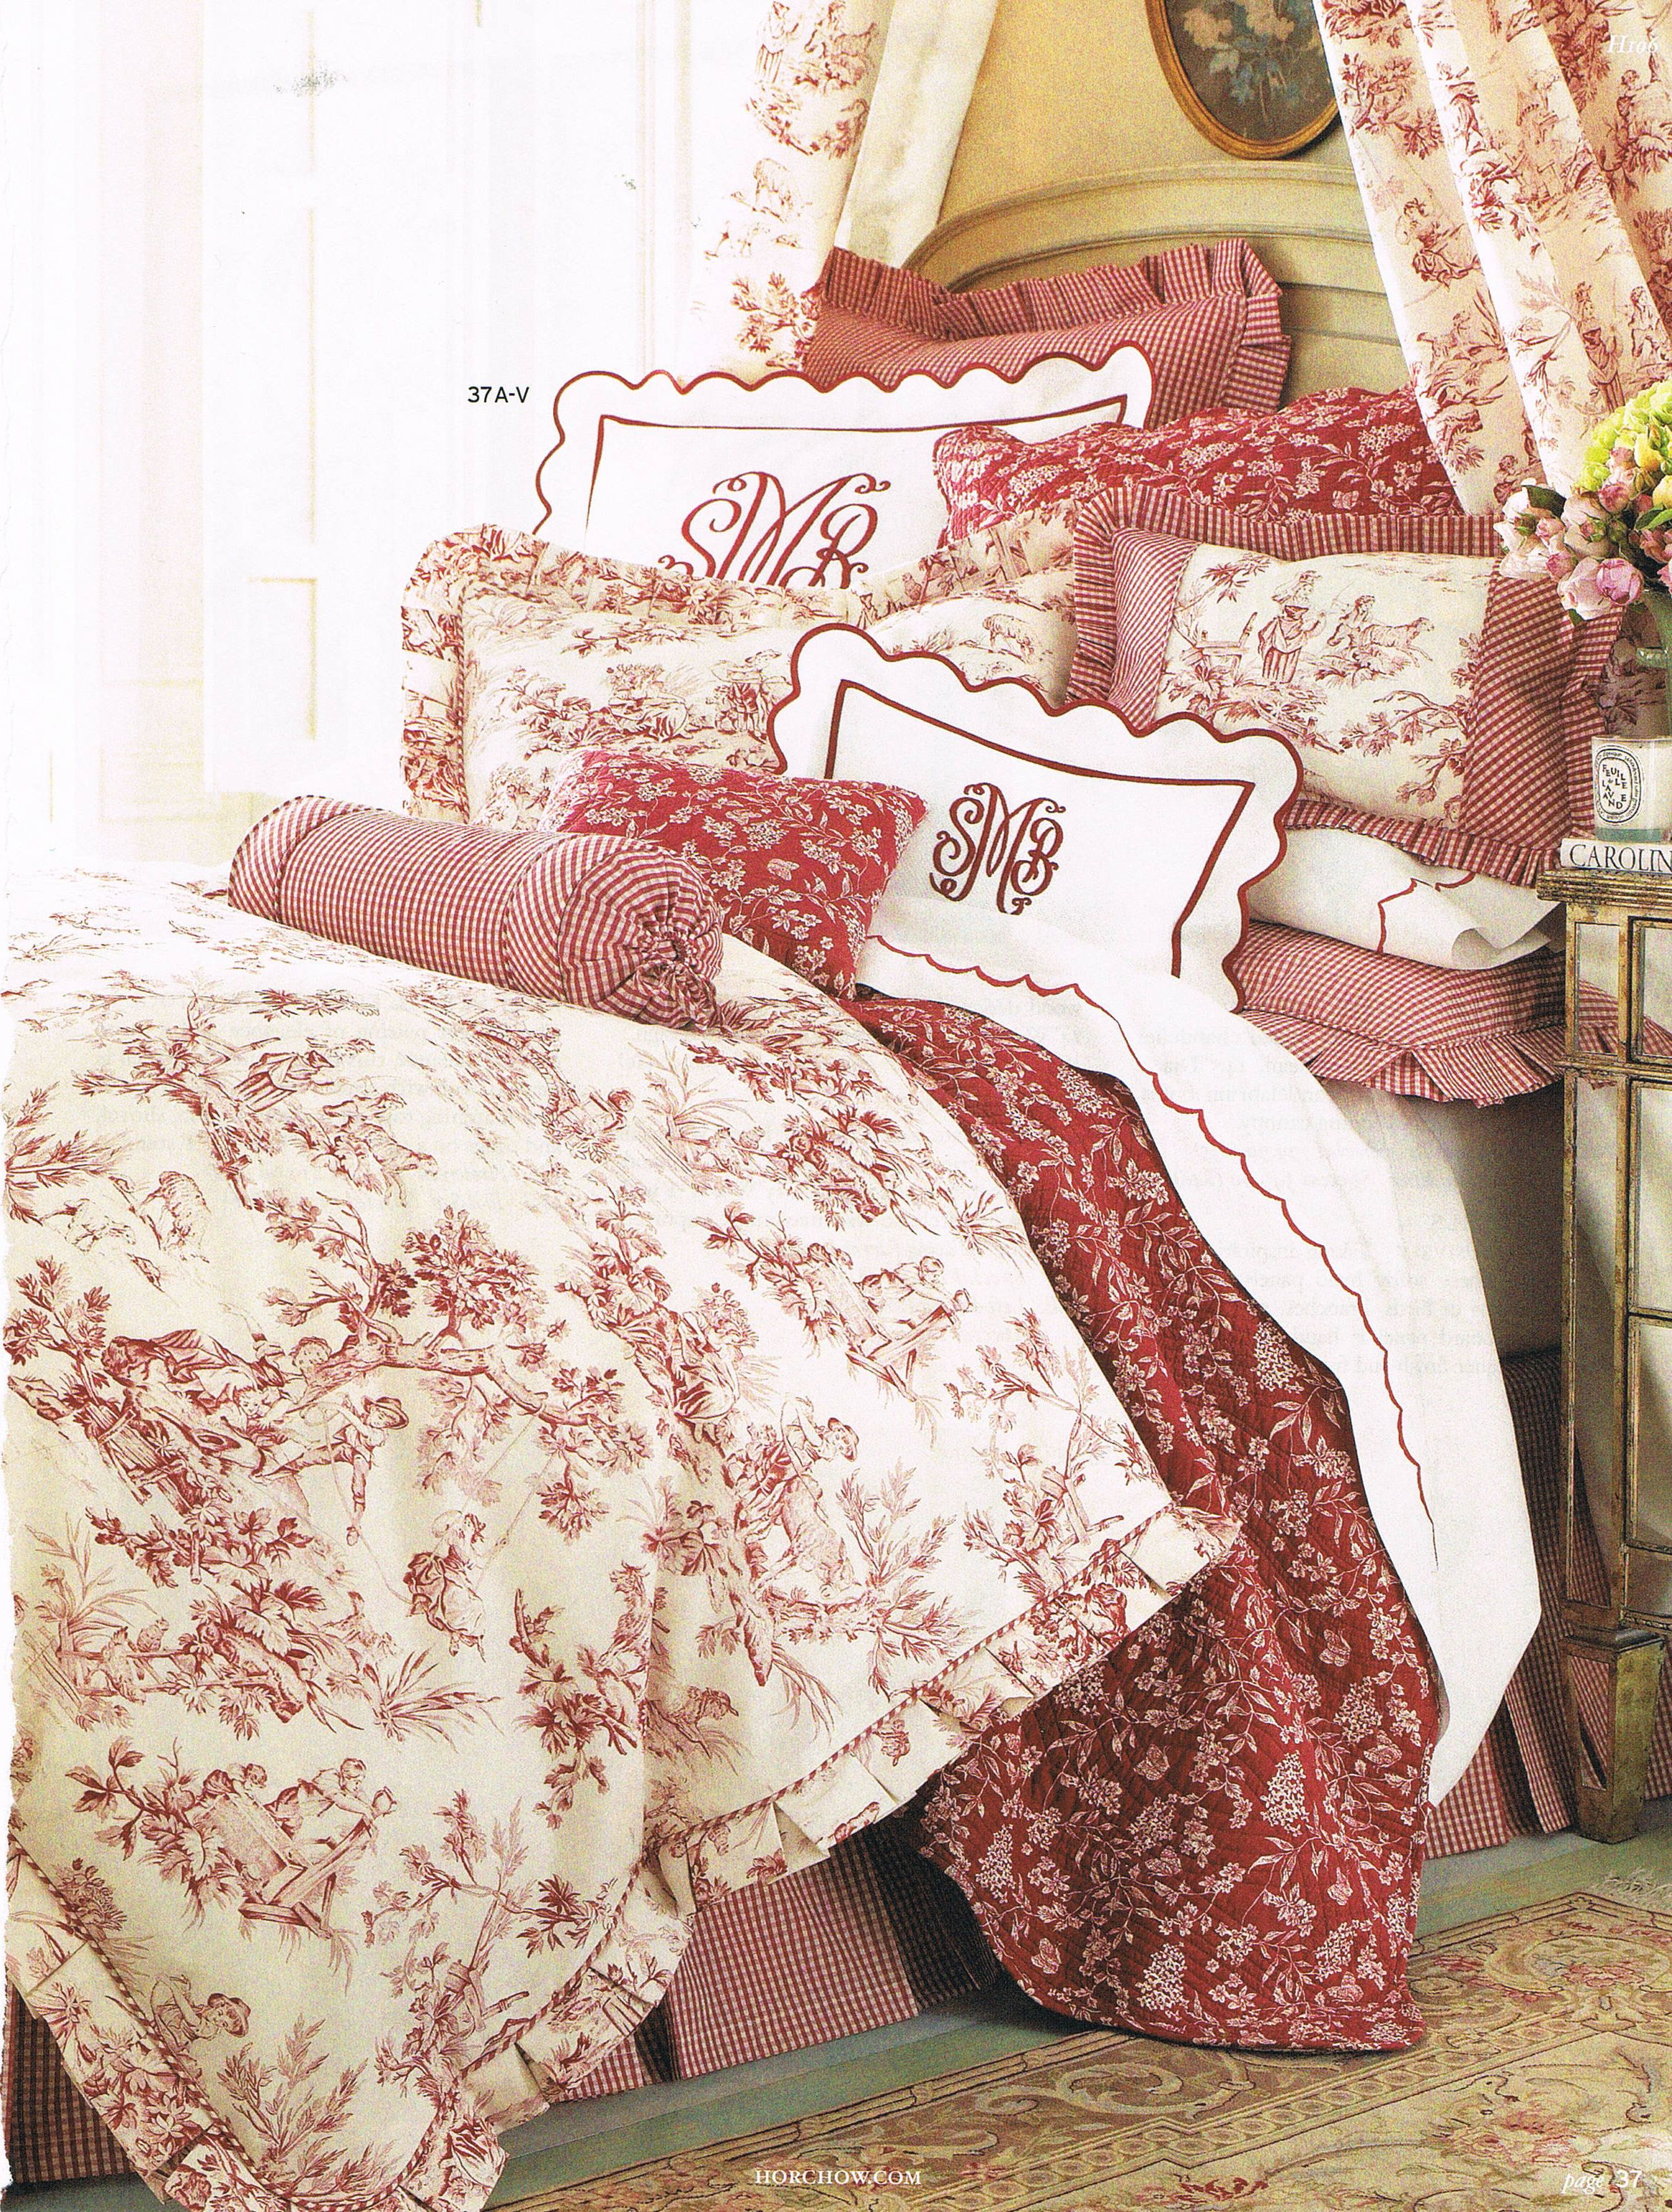 Red Toile   Cute For Spare Room!